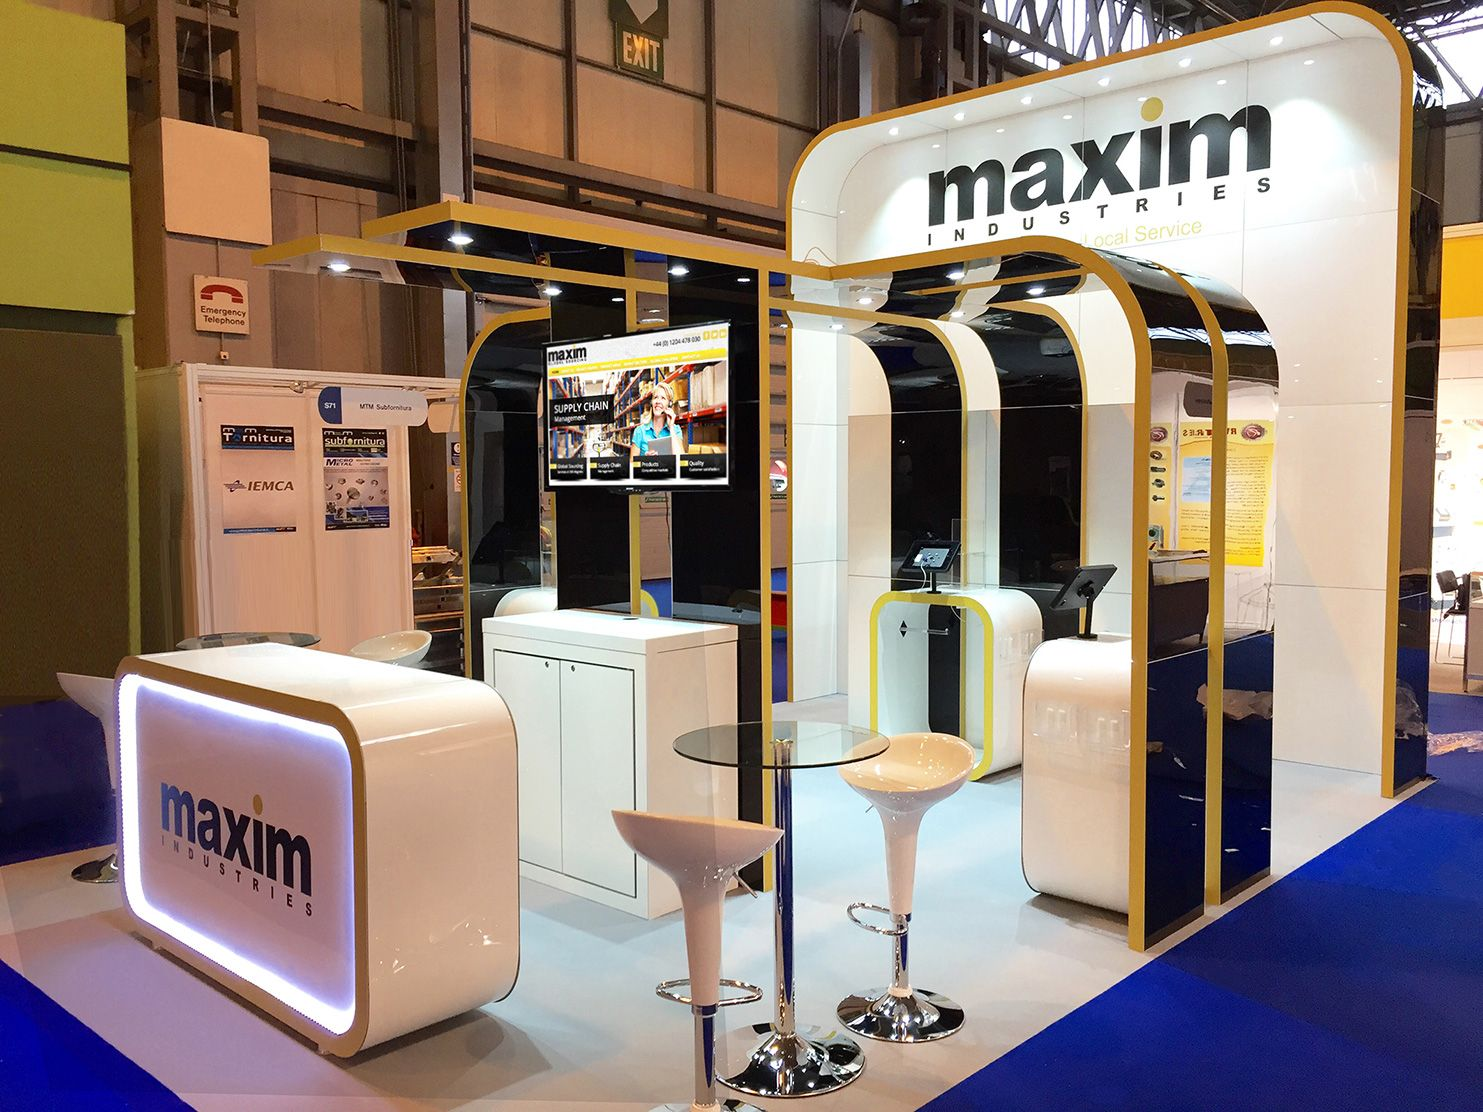 Marketing Exhibition Stand Years : Exhibition #exhibitionstand #marketing #branding #design möbius